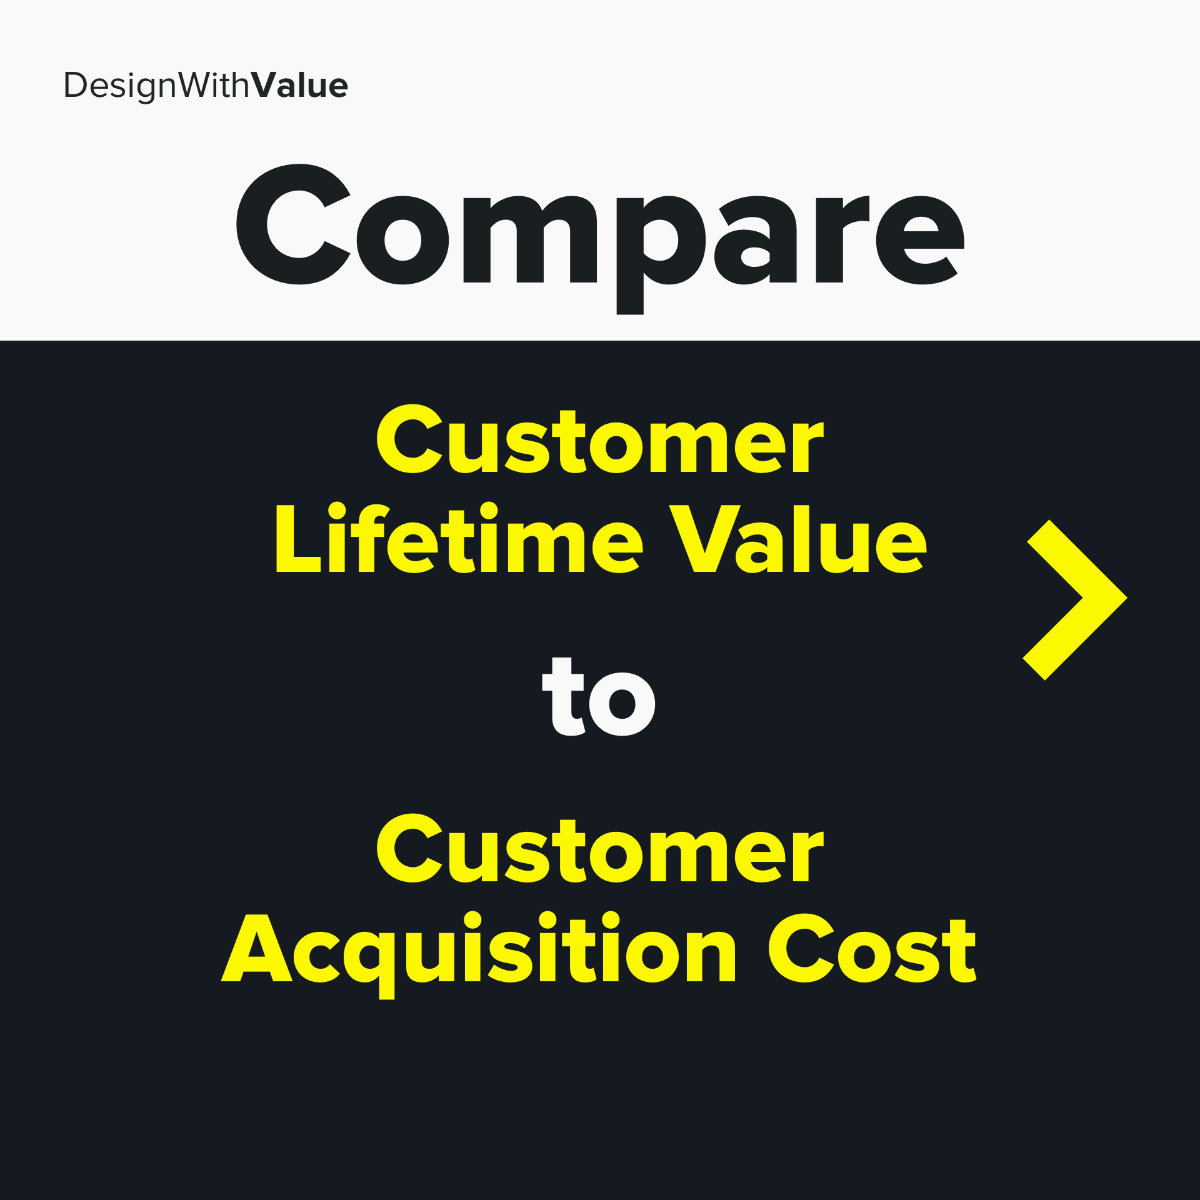 Compare customer lifetime value to customer acquisition cost